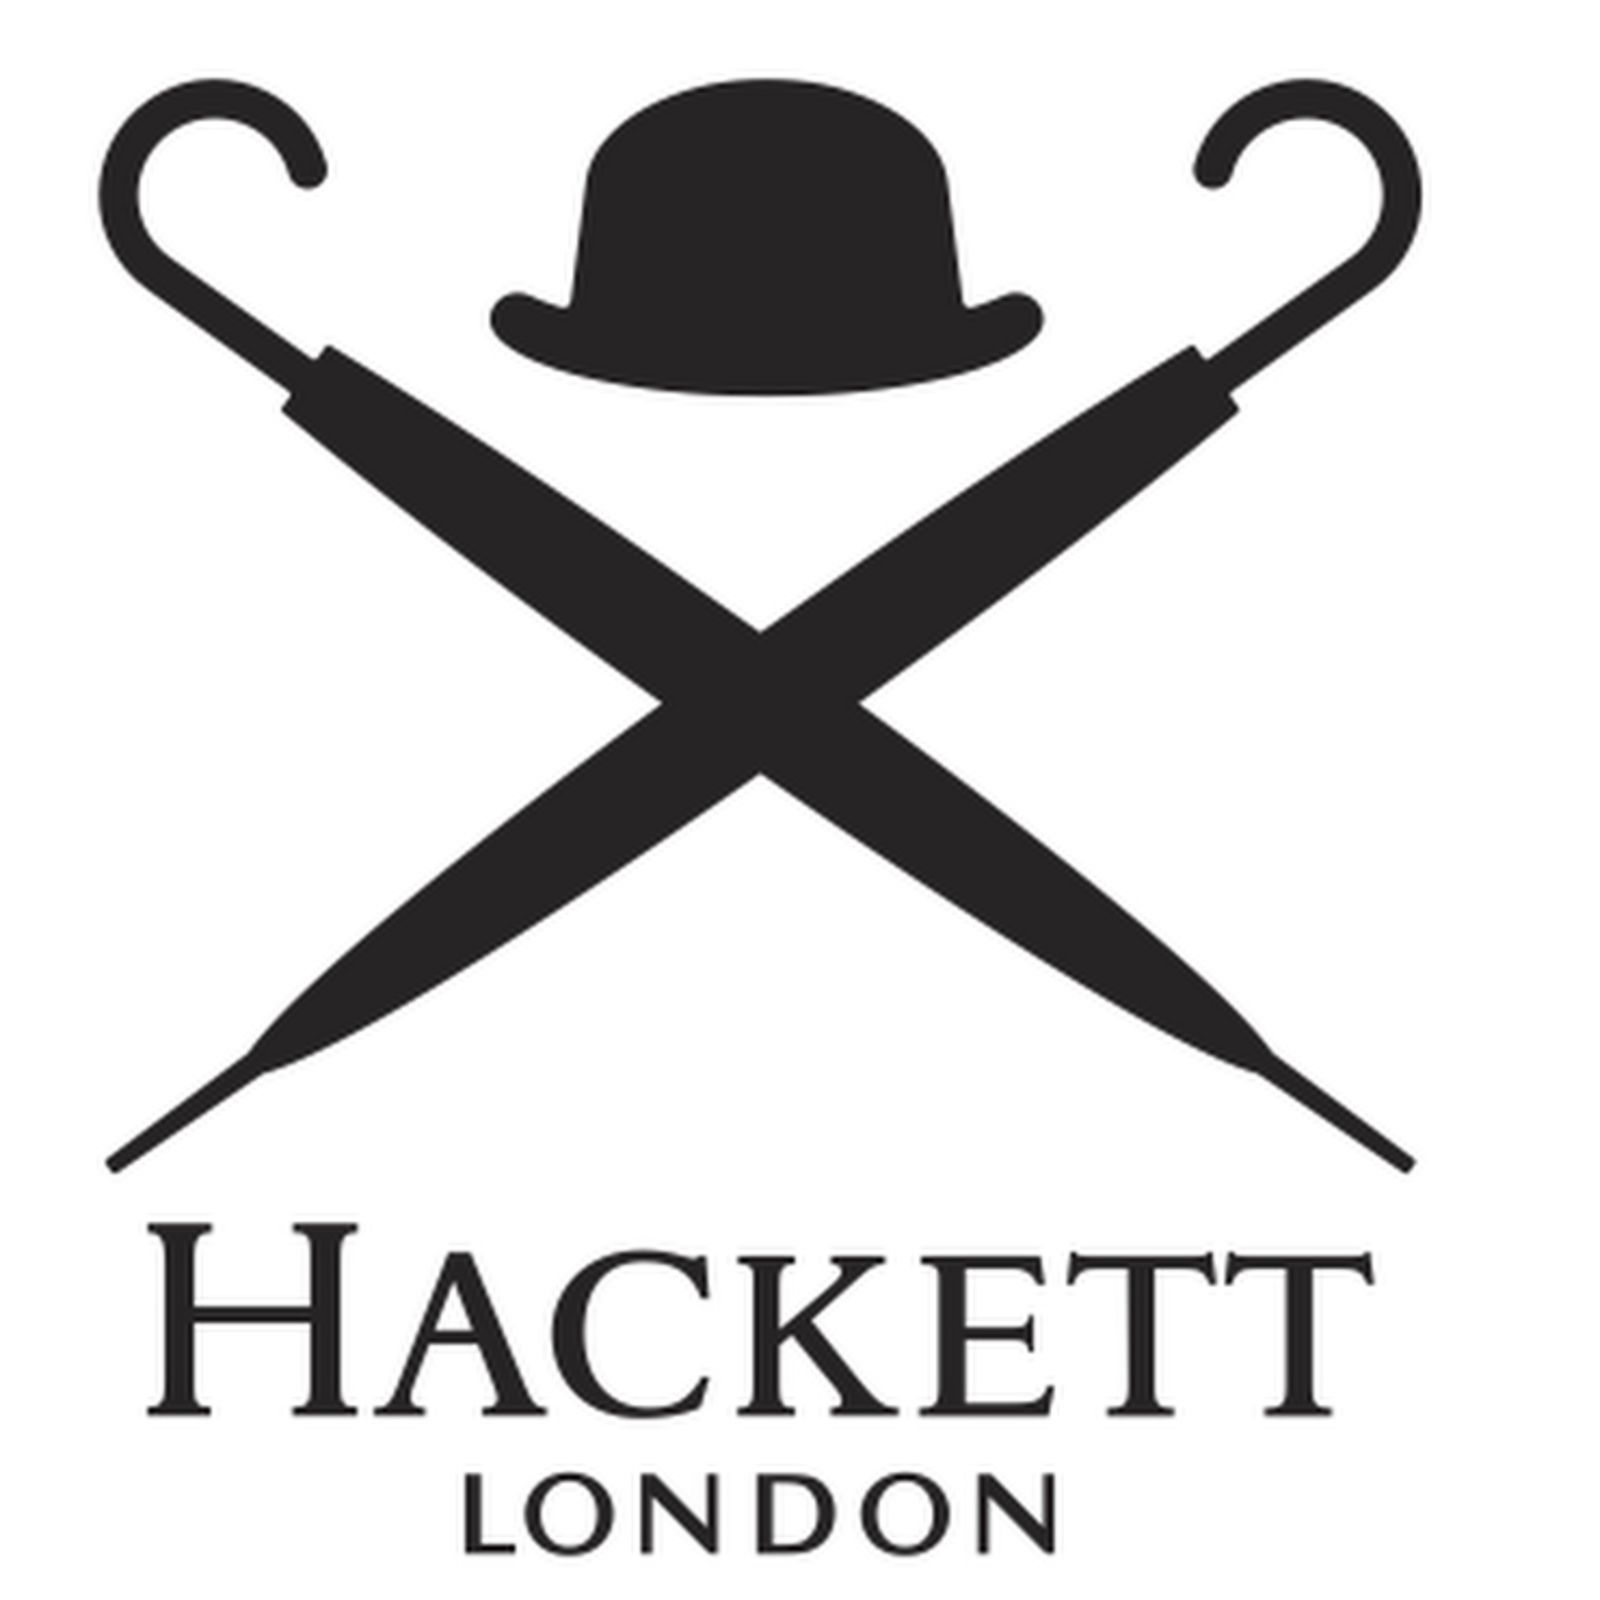 HACKETT LONDON (Bild 1)